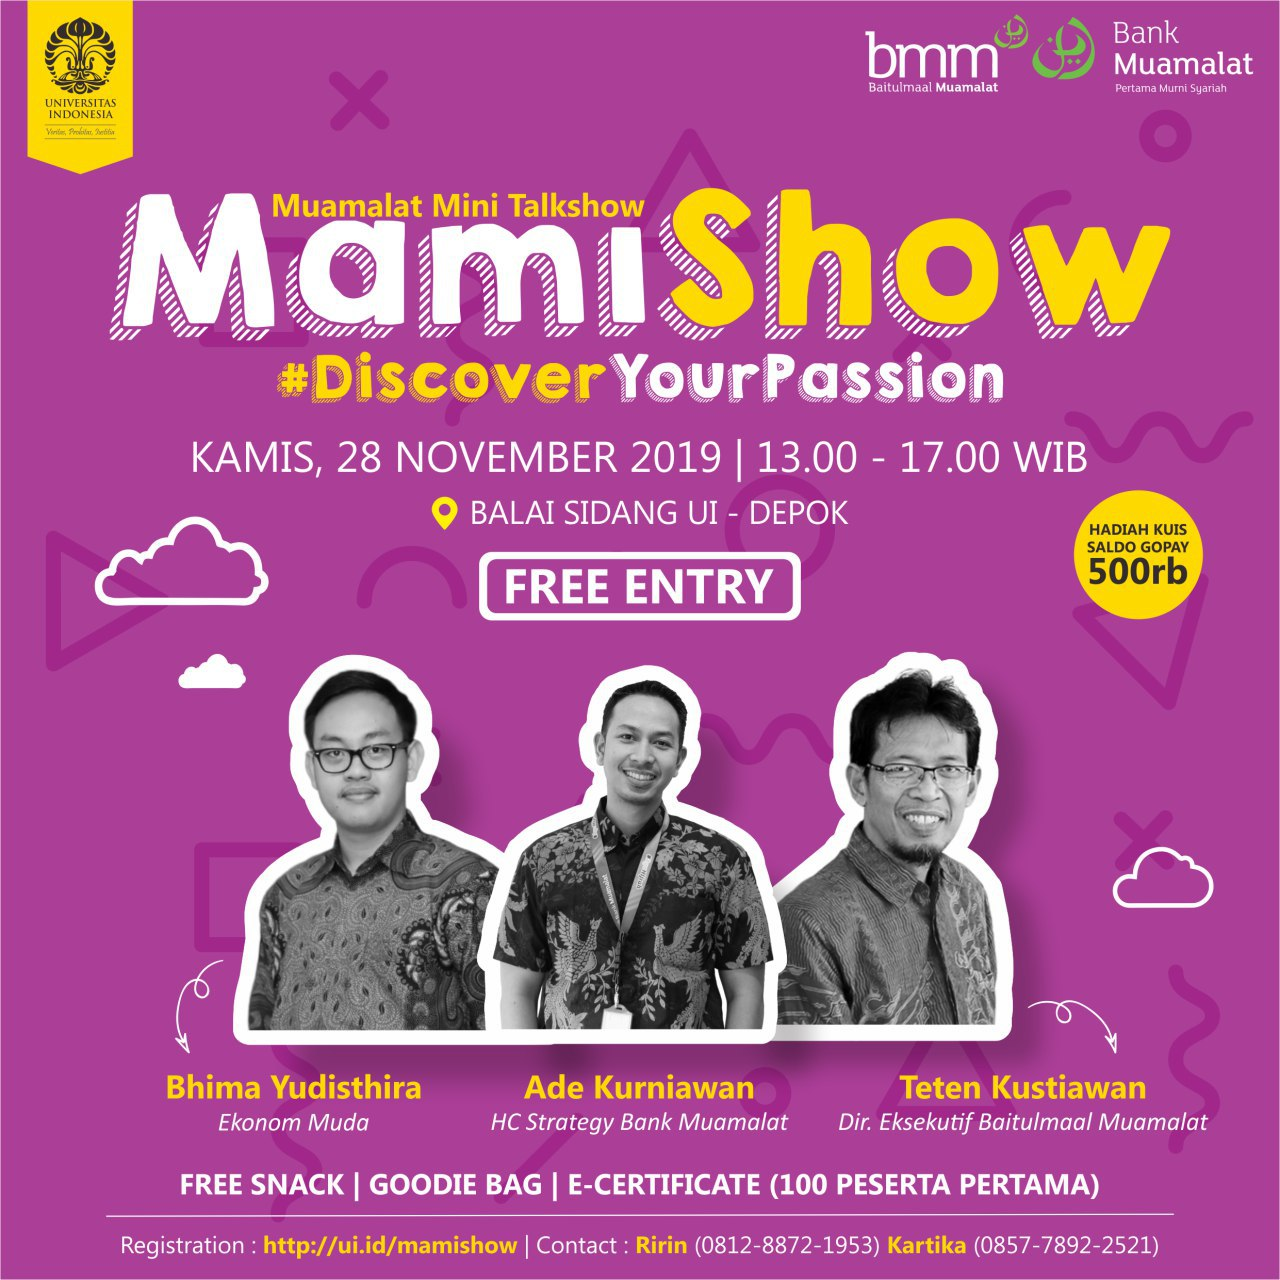 files/event/muamalat-mini-talkshow-discoveryourpassion-572269b9536afaf.jpeg